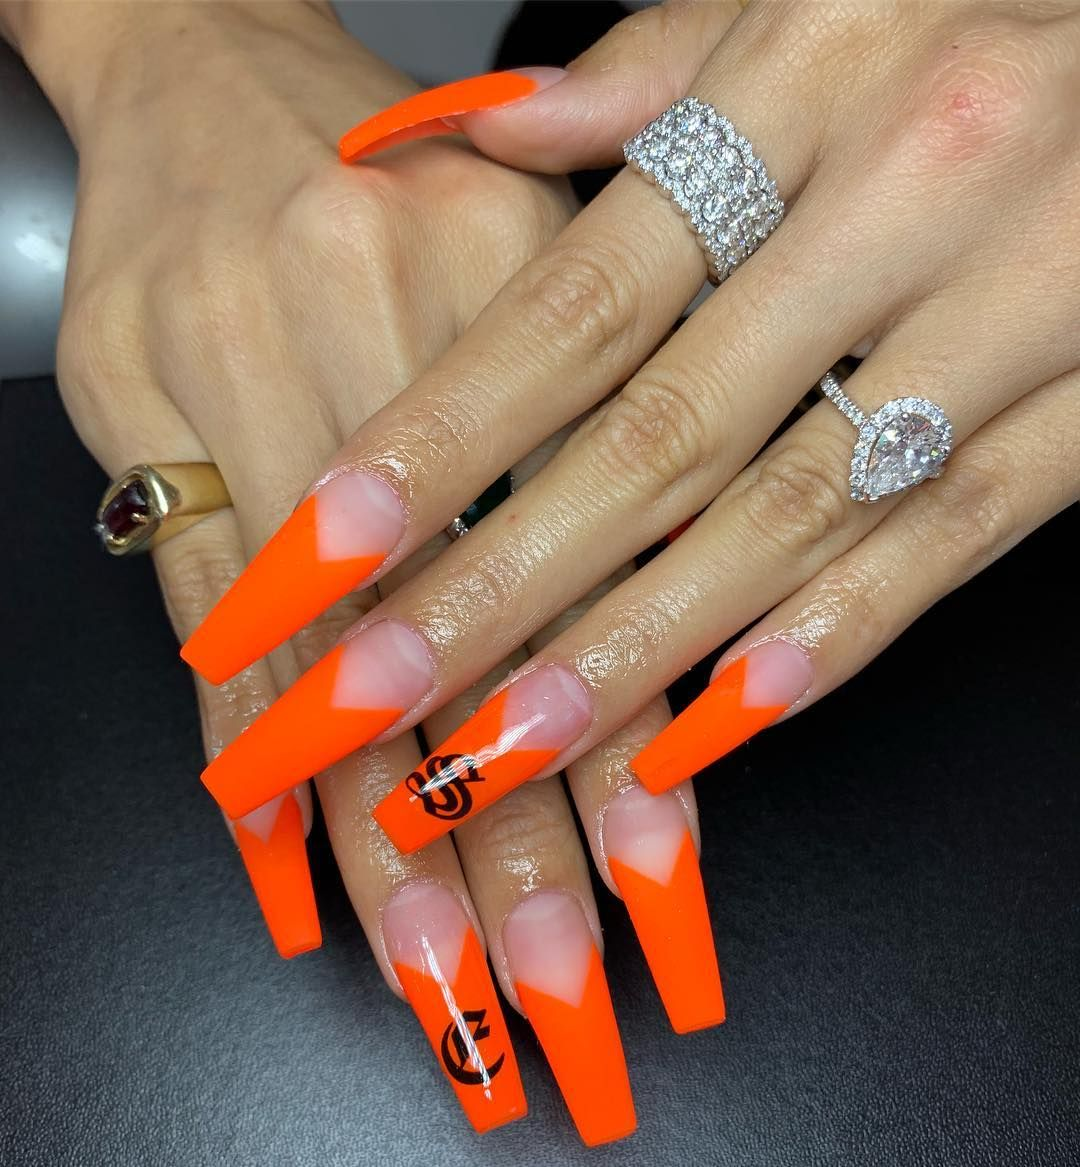 Brendadealba On Instagram Orange Matte V Tip With Old English Letters Nails For Jen Ny69 Tha Orange Acrylic Nails Ombre Nails Glitter Fire Nails